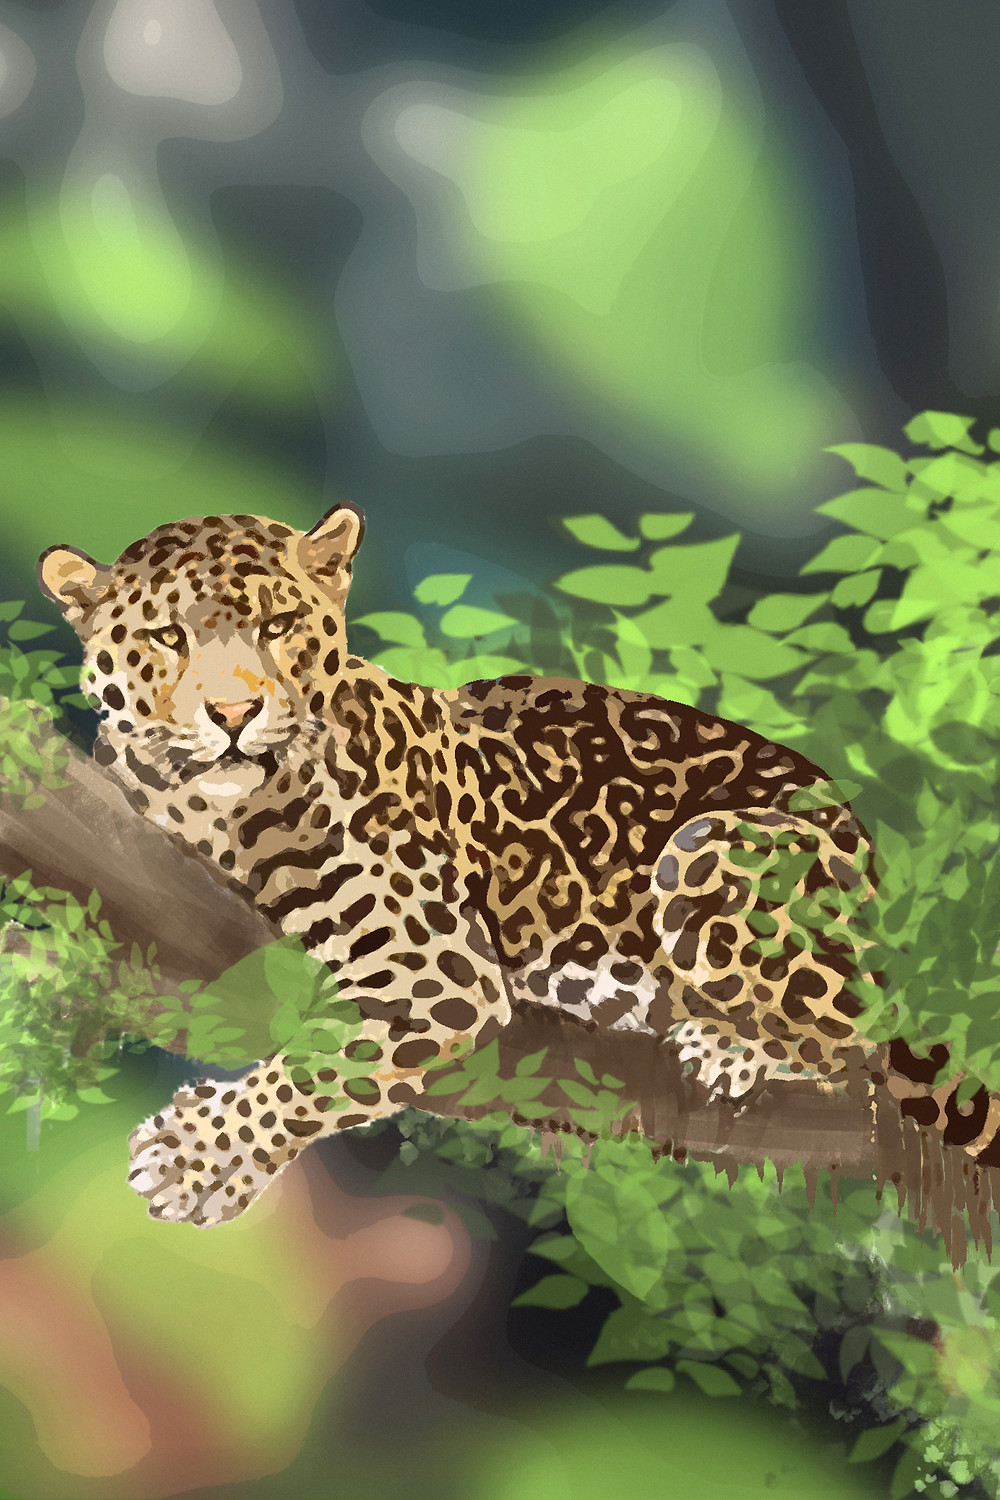 amur leopard endangered species The Case of the Disappearing Amur Leopard